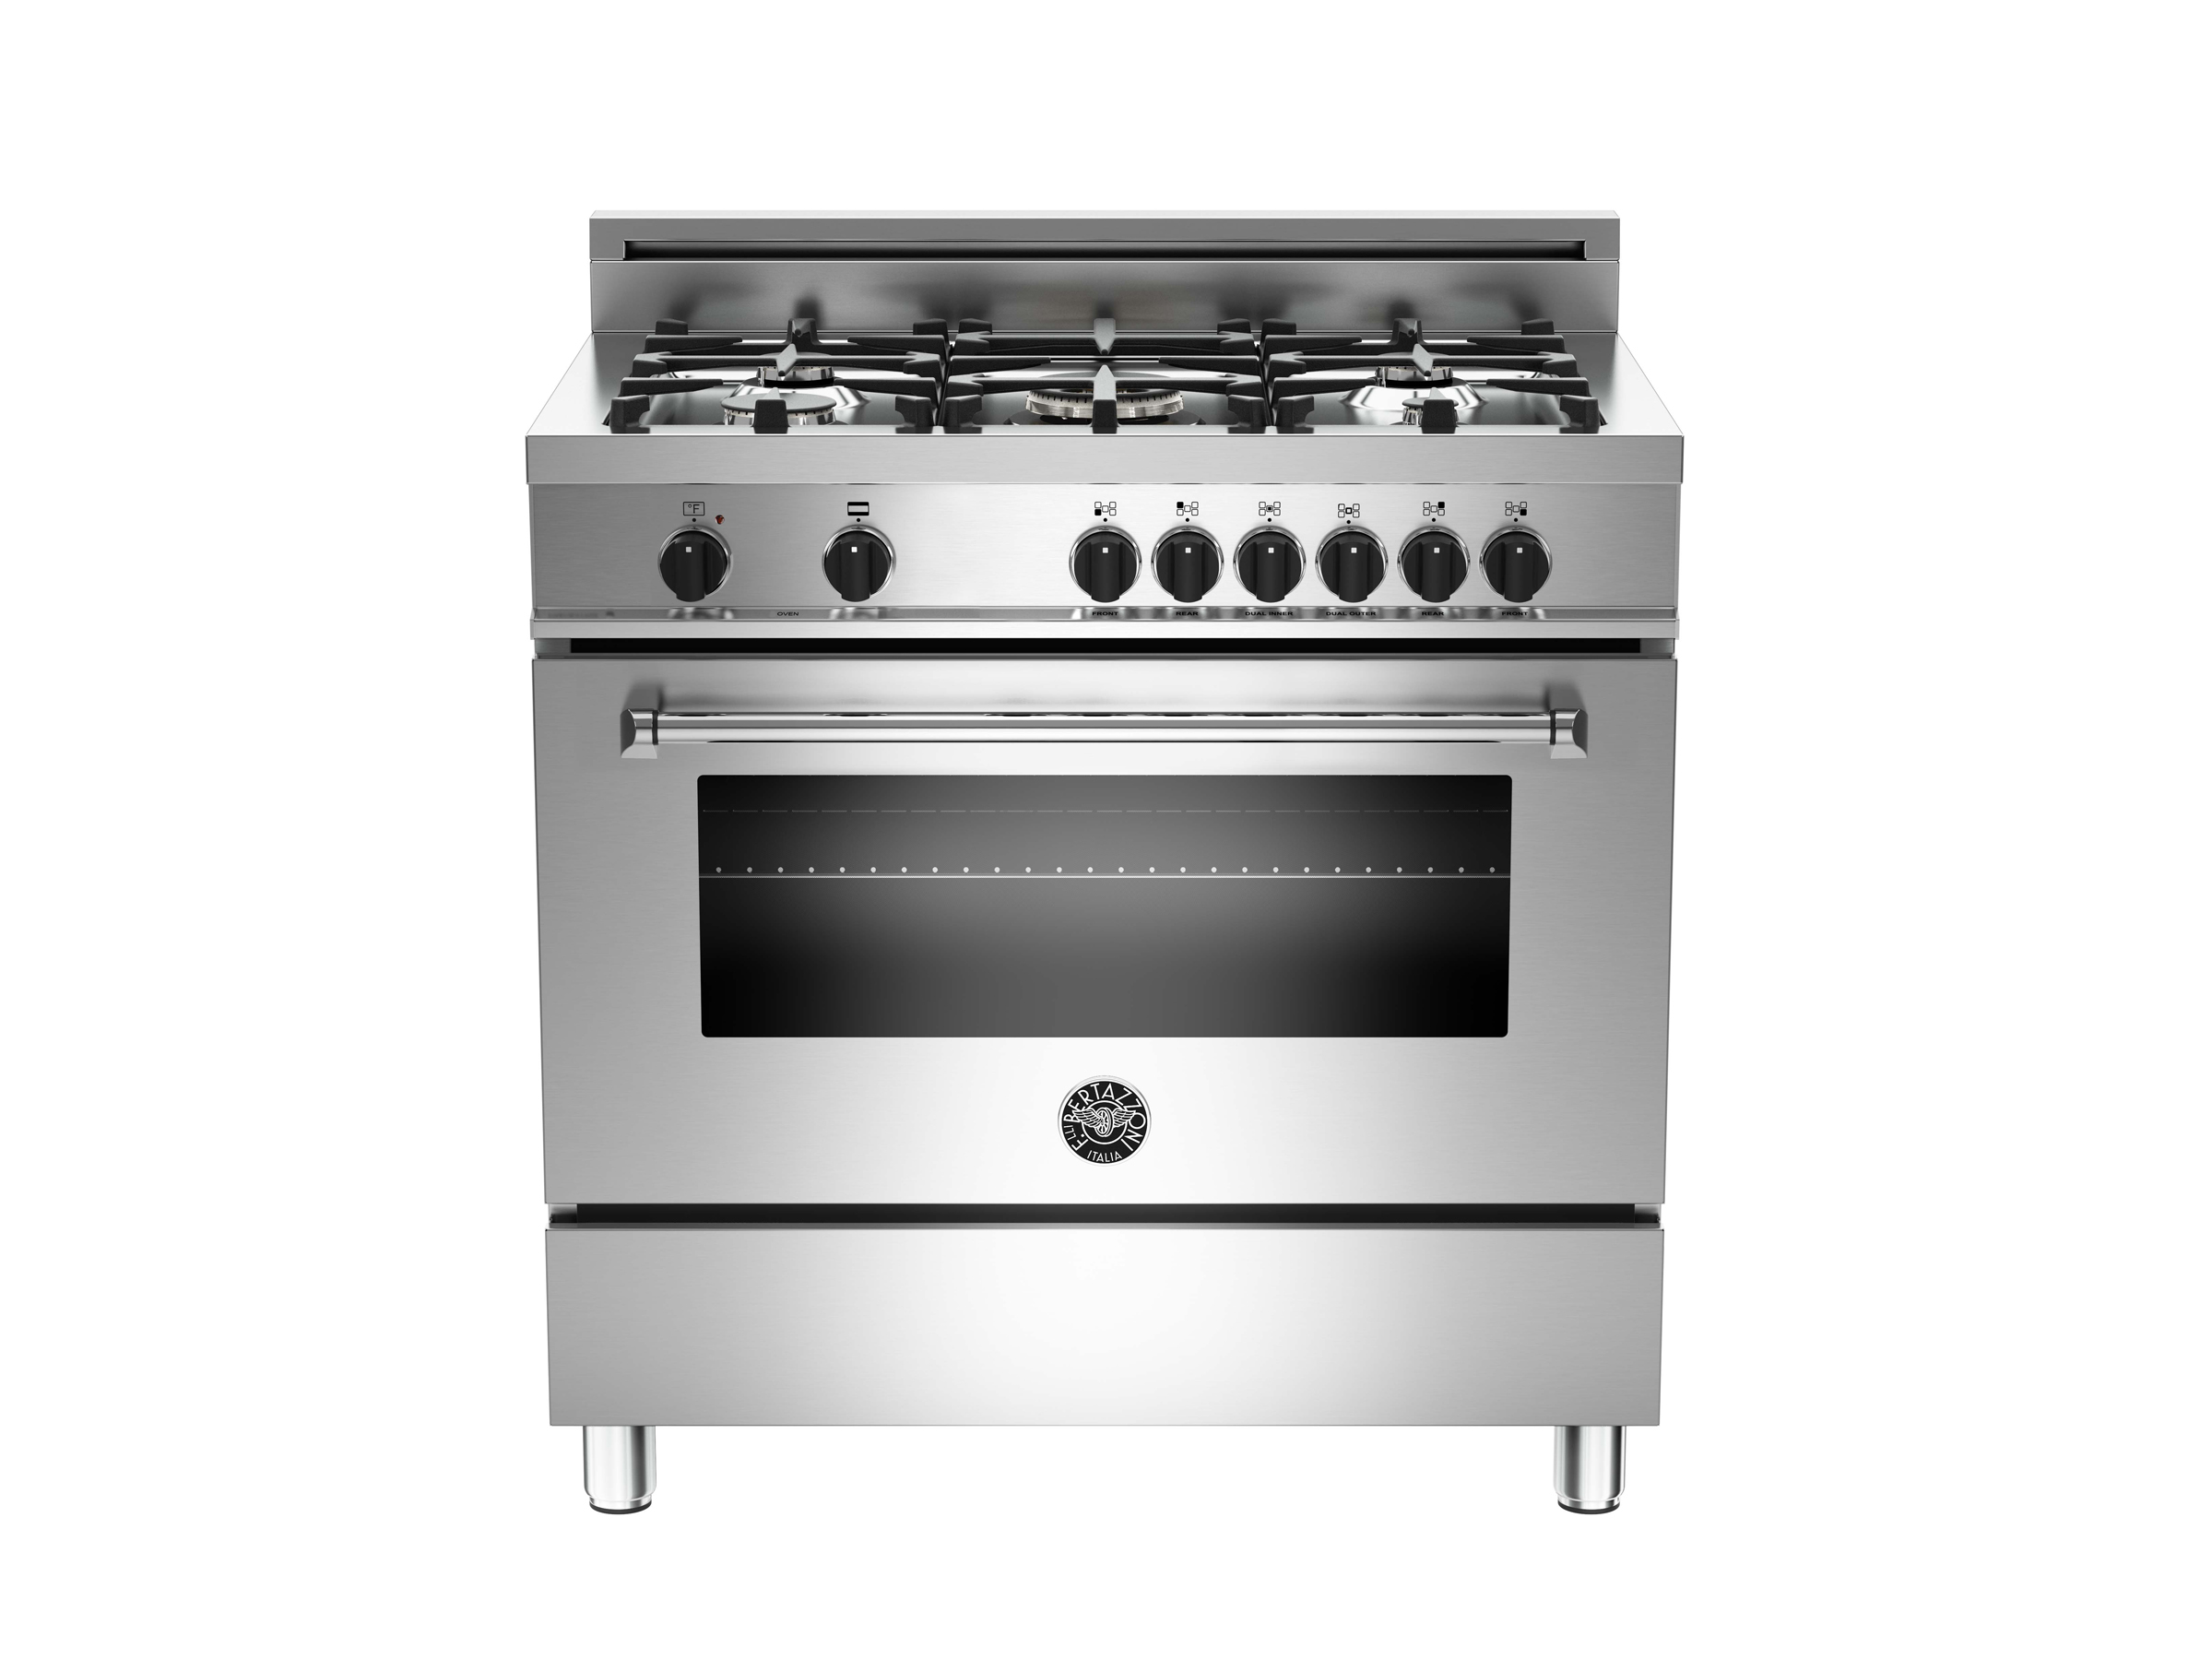 36 5-Burner, Electric Oven | Bertazzoni - Stainless